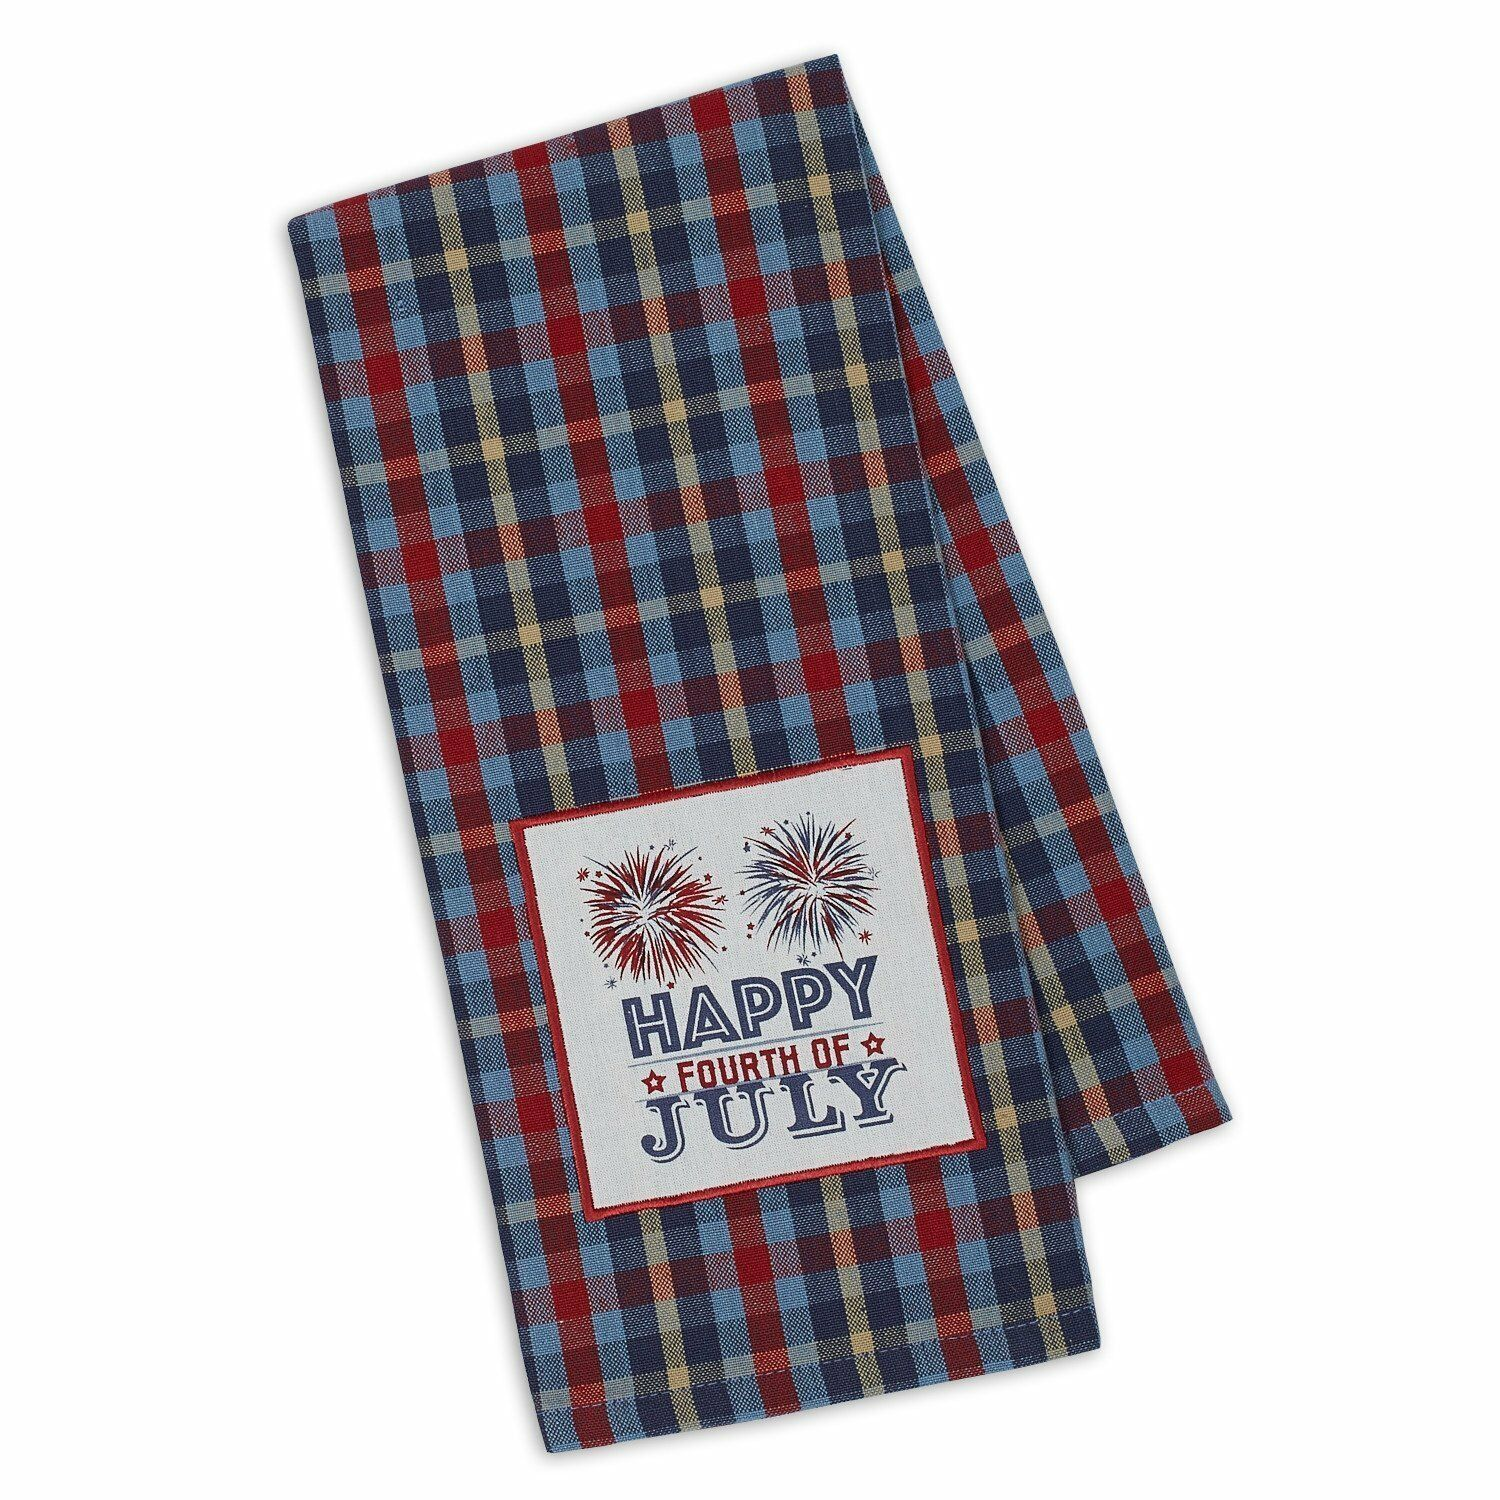 Primary image for Happy Fourth of July Dish Towel Embellished New Cotton Kitchen Tea Fireworks 4th